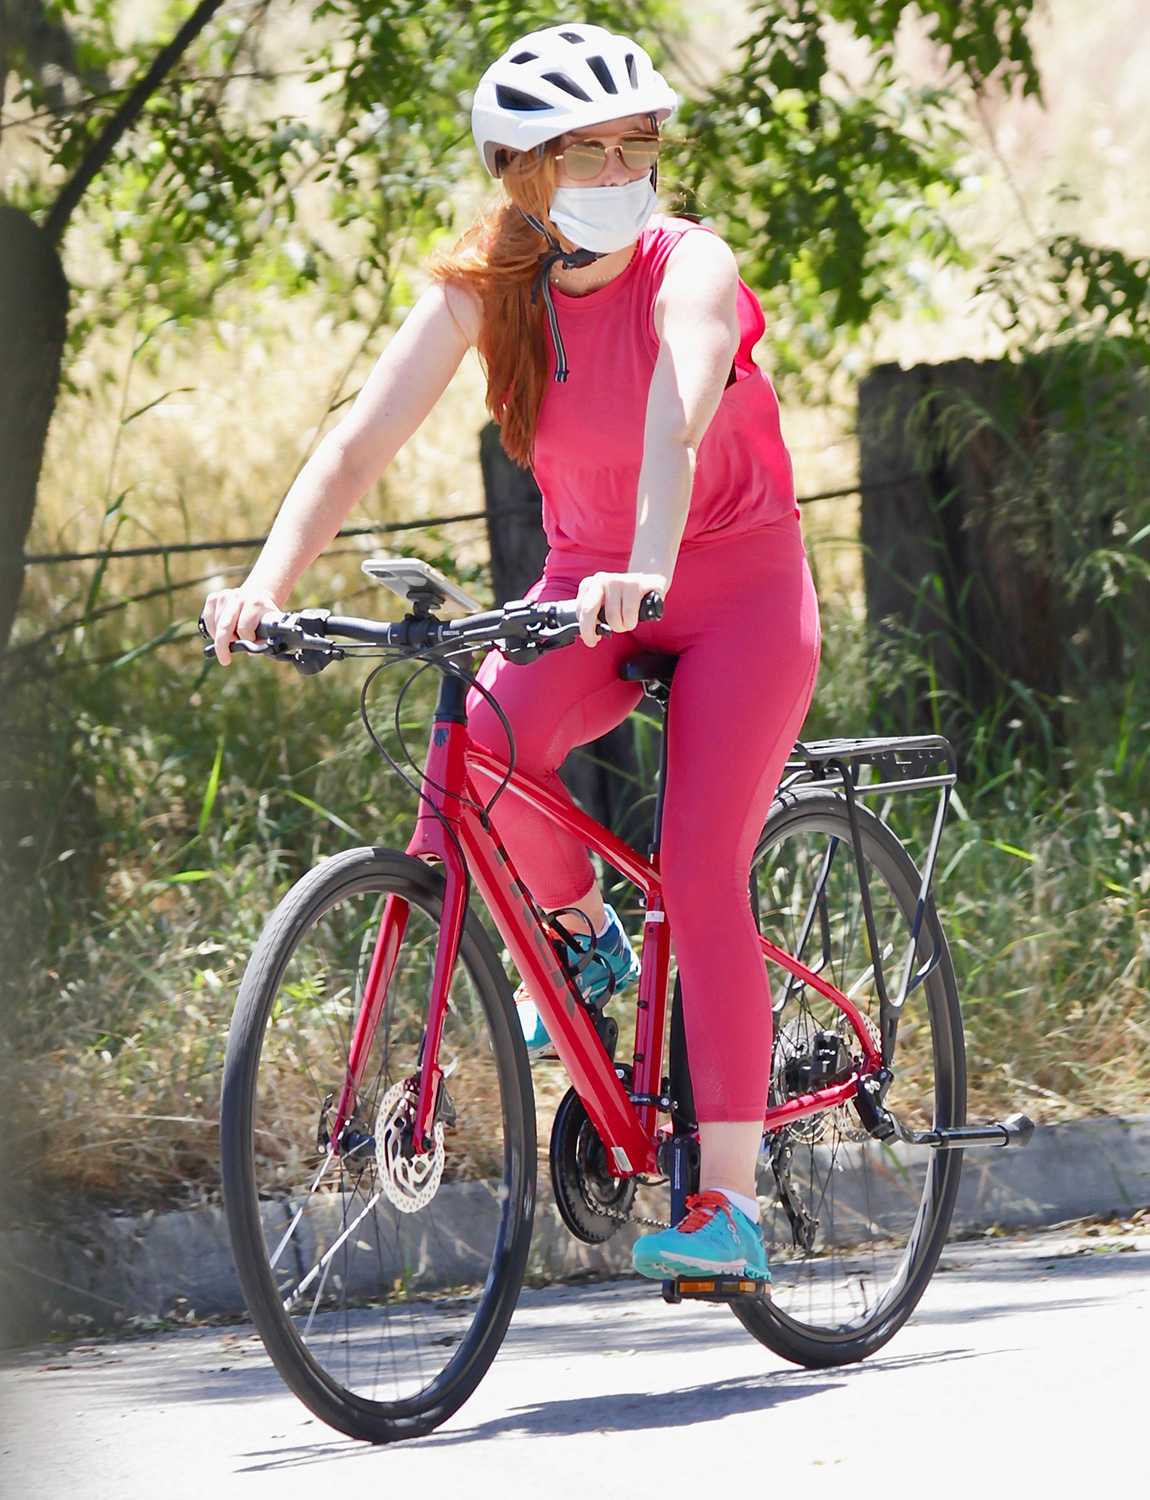 Isla Fisher is Pictured on a Bicycle Ride in Los Angeles.